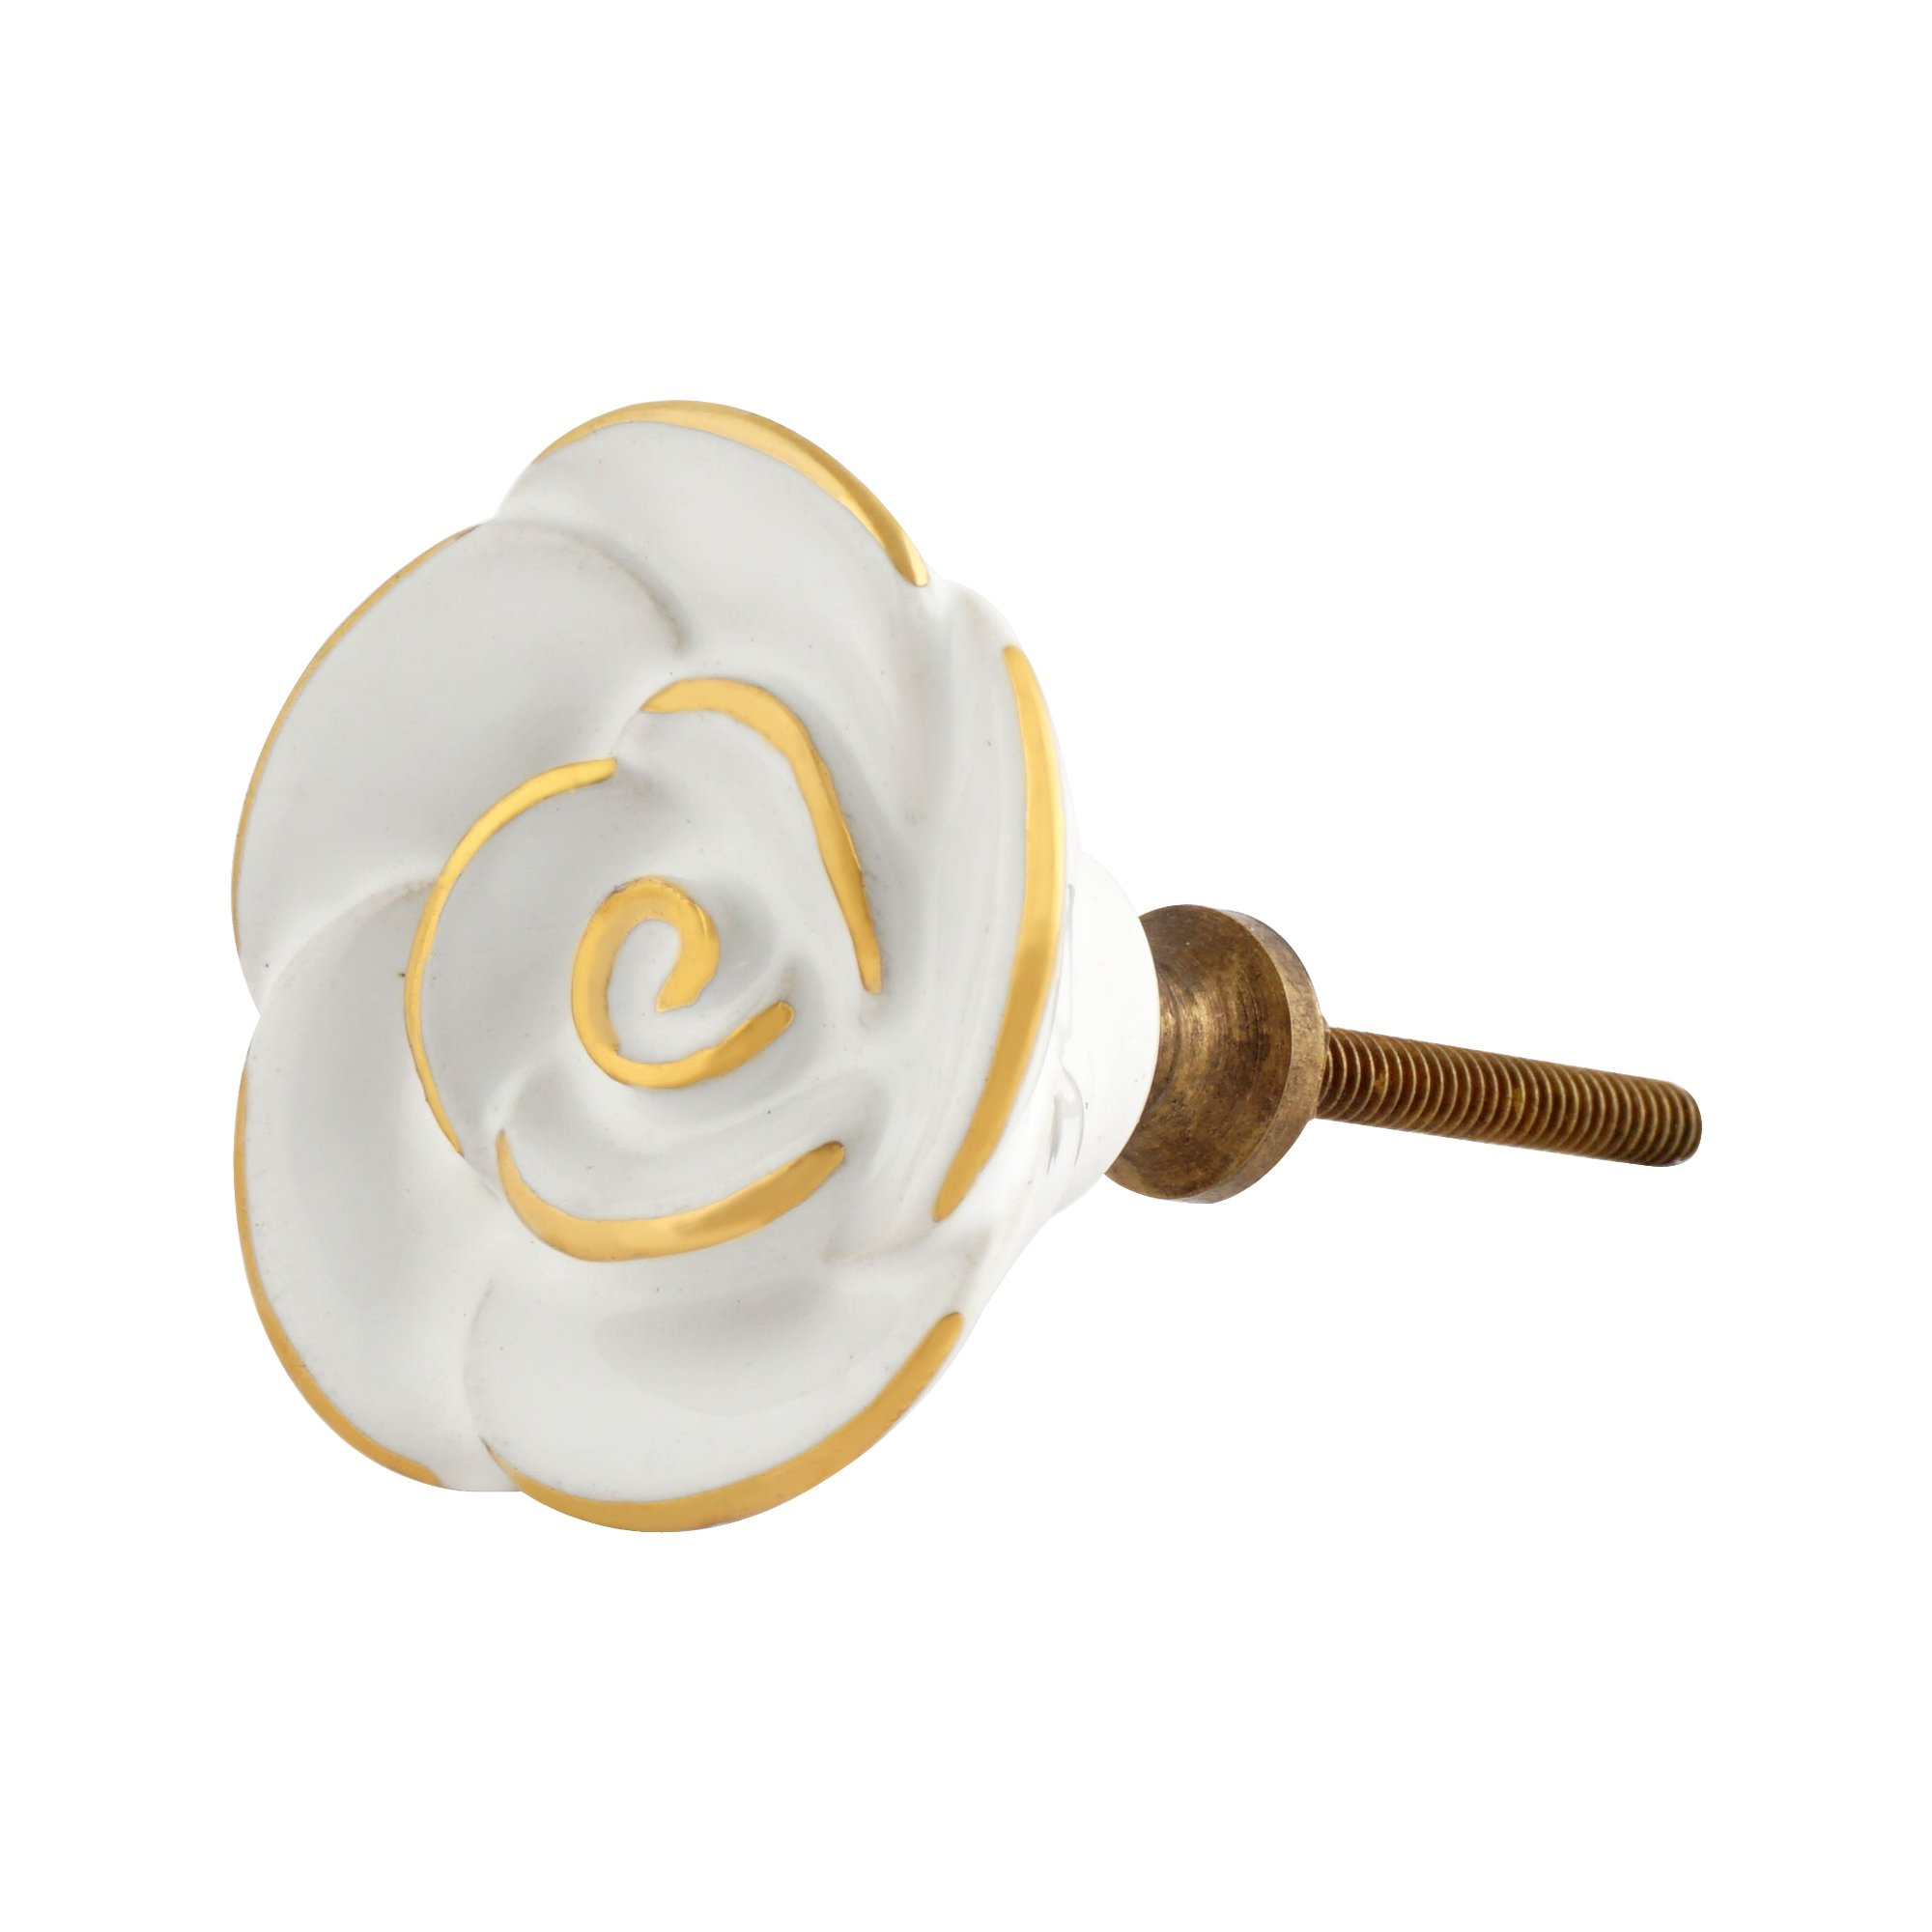 Set of 4 White Rose Decorative Ceramic Knobs – Ornate Cabinet Pulls for Cabinet, Dressers and Drawers – Rose Drawer Knobs for Bathroom, Bedroom, Kitchen, and Living Room by Artisanal Creations